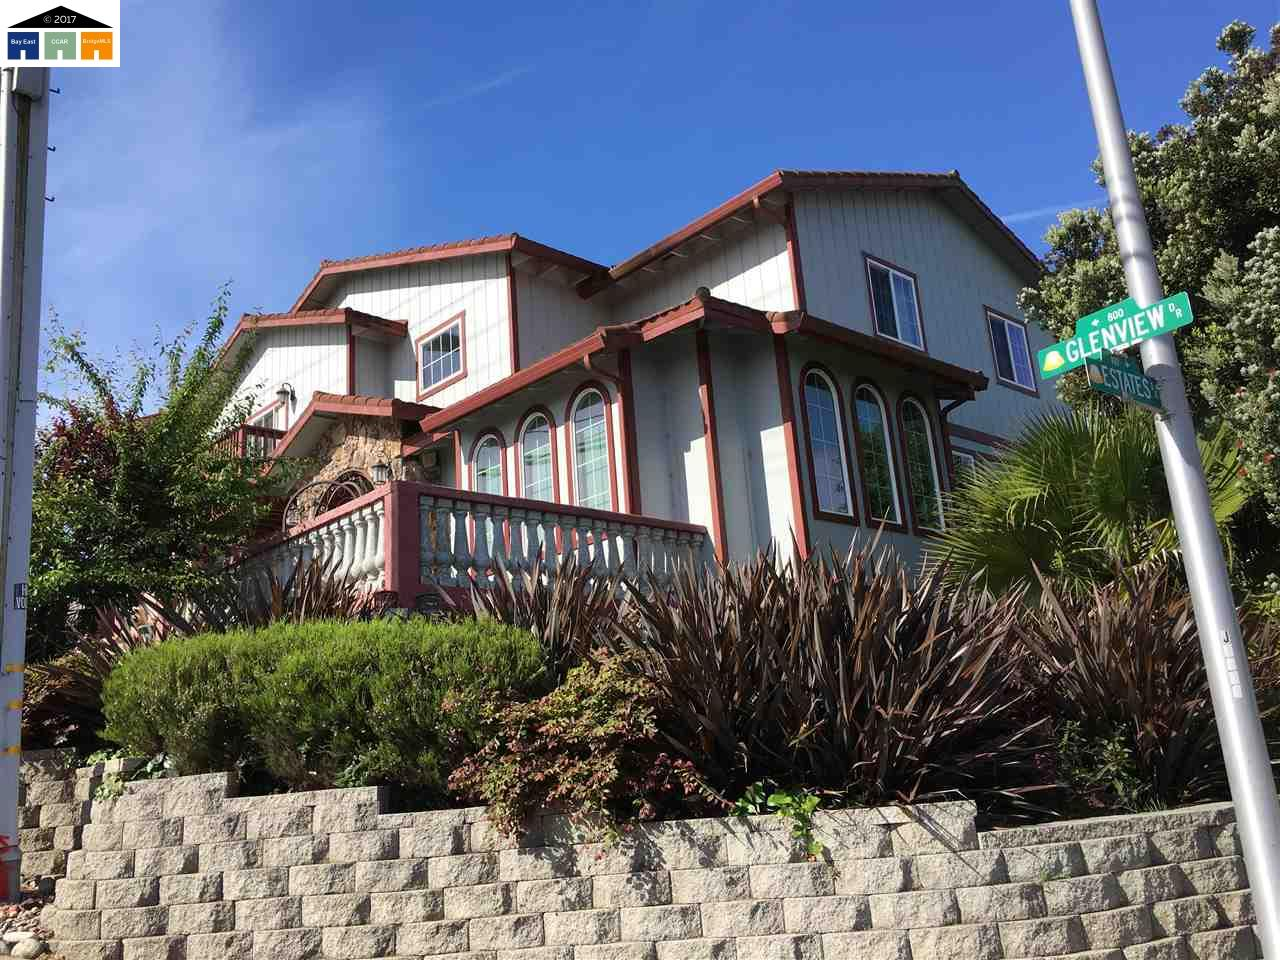 Single Family Home for Sale at 881 Glenview Drive 881 Glenview Drive San Bruno, California 94066 United States